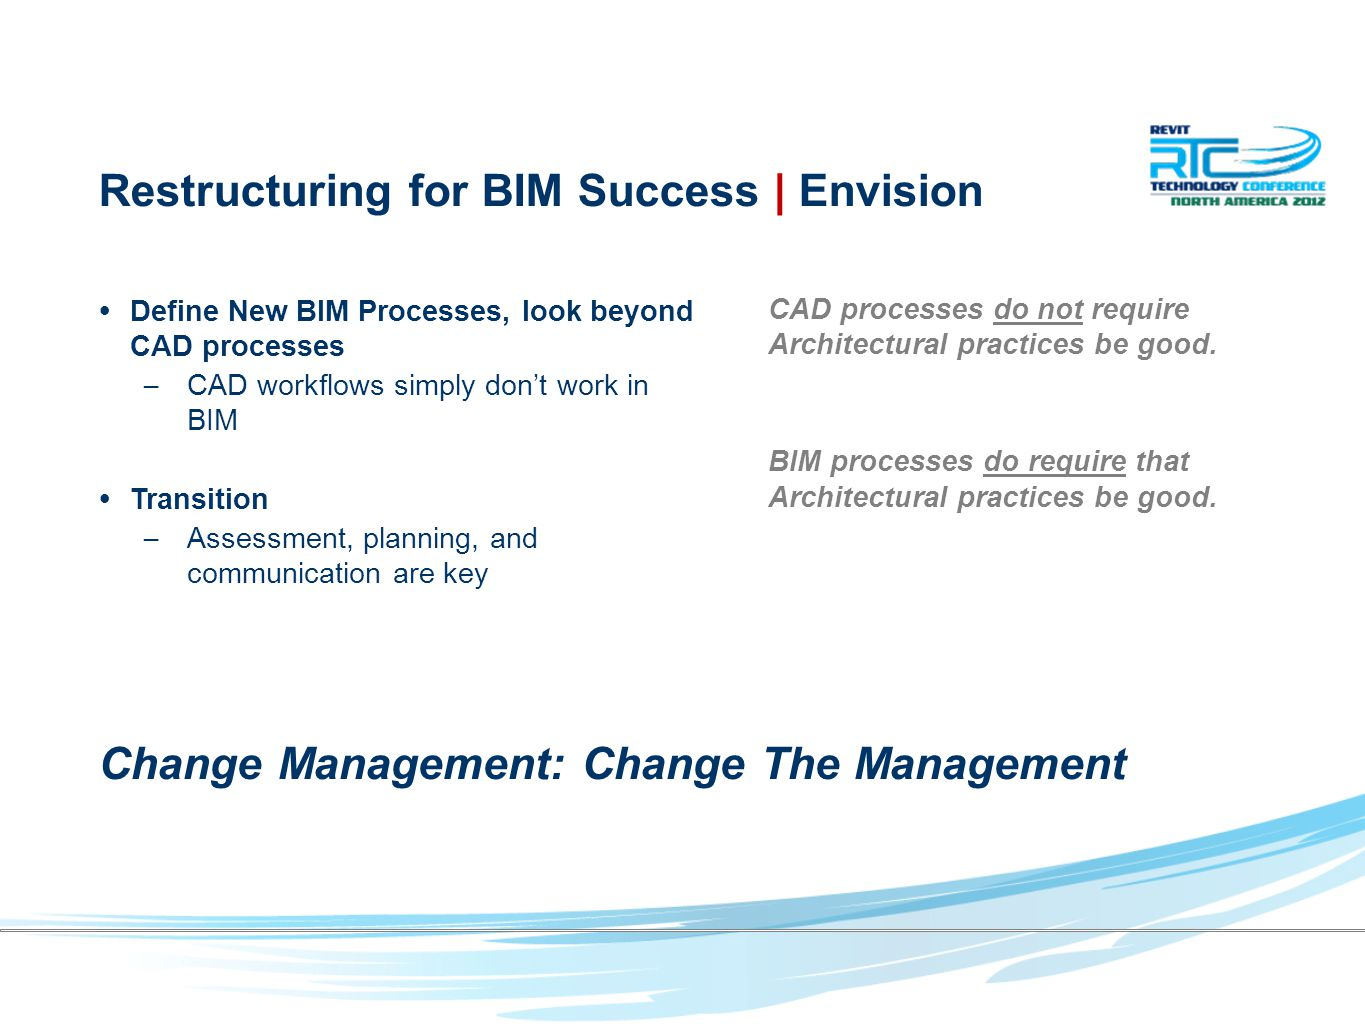 Restructuring for BIM Success | Envision Define New BIM Processes, look beyond CAD processes – CAD workflows simply don't work in BIM Transition – Assessment, planning, and communication are key CAD processes do not require Architectural practices be good.